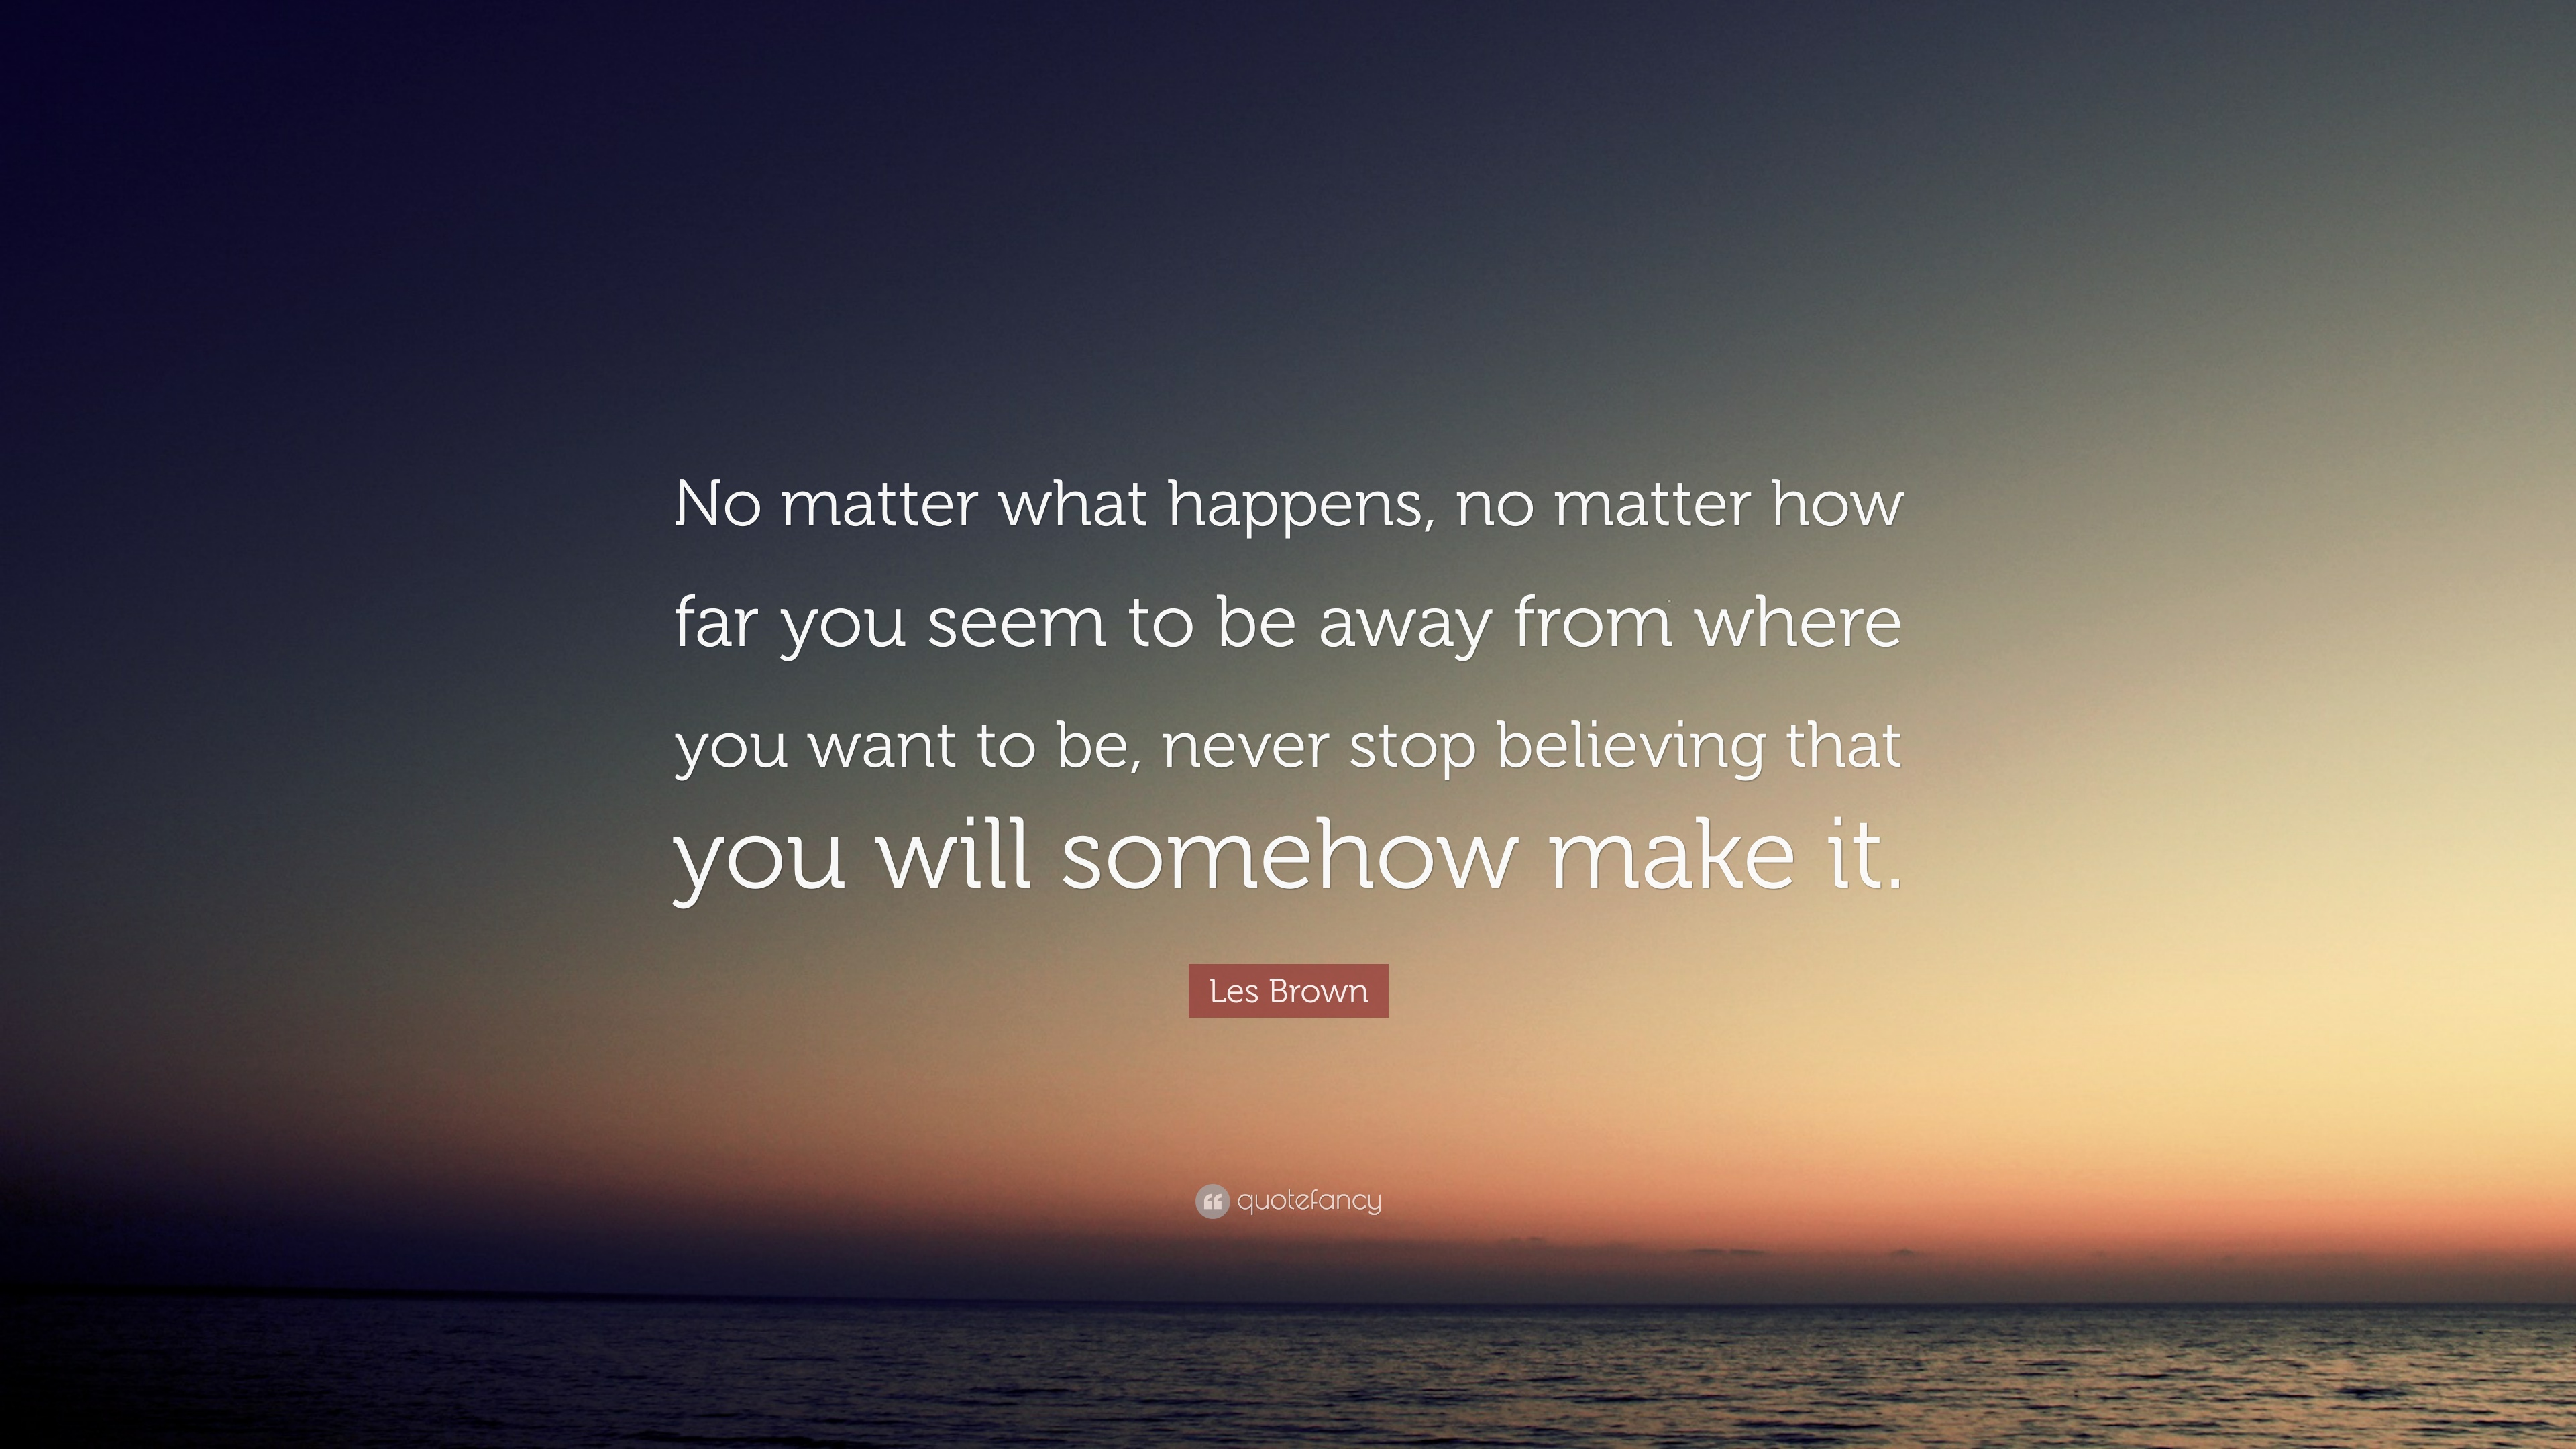 Les Brown Quote No Matter What Happens No Matter How Far You Seem To Be Away From Where You Want To Be Never Stop Believing That You W 12 Wallpapers Quotefancy